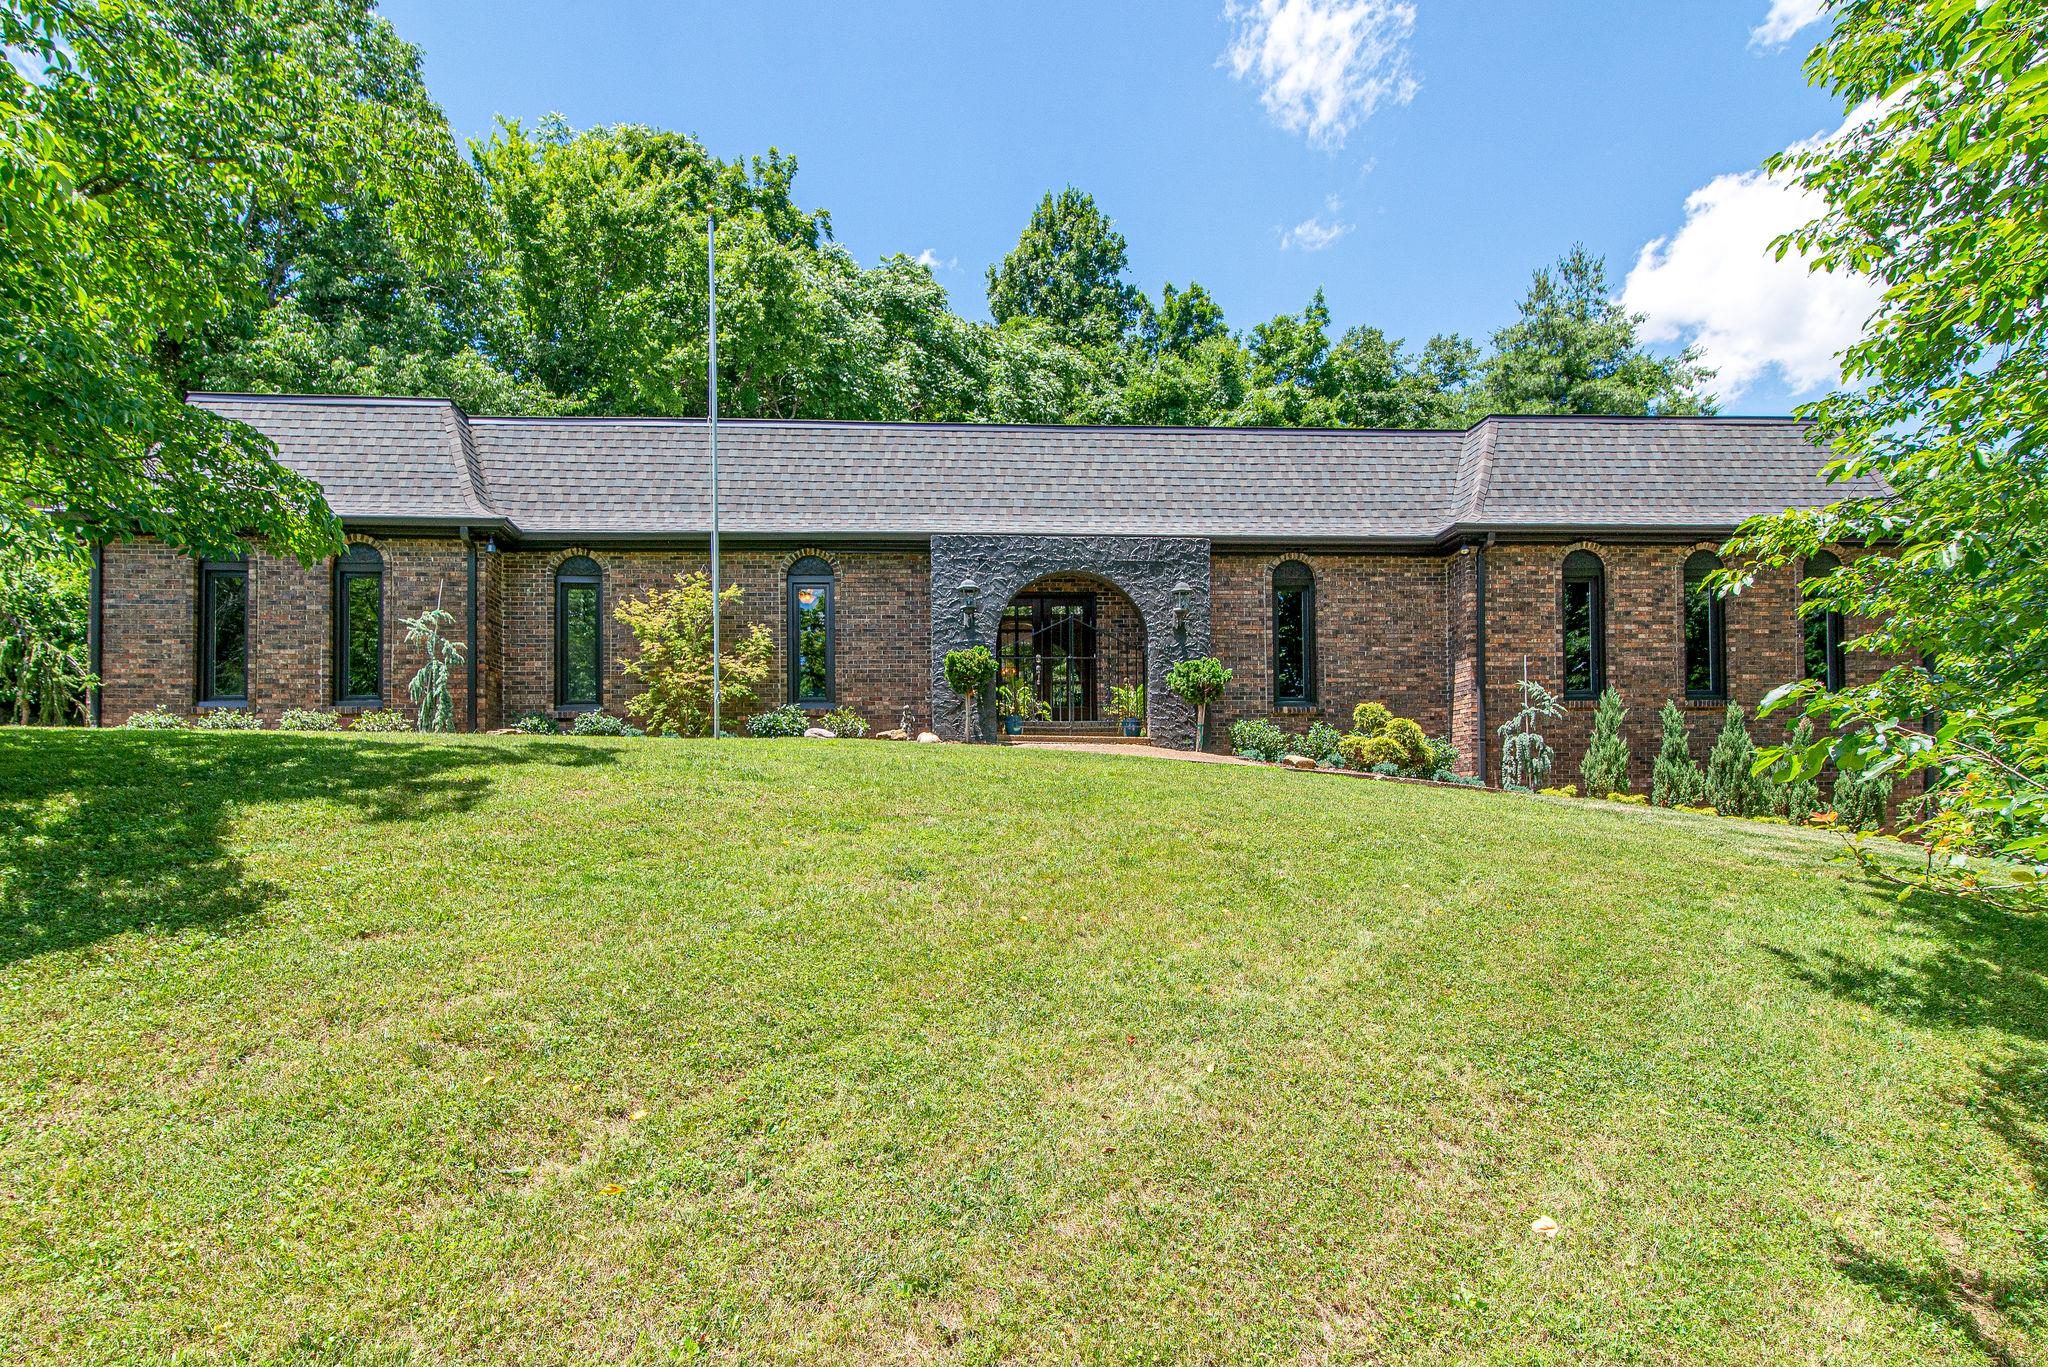 5342 Green Valley Ct, Nashville, TN 37220 - Nashville, TN real estate listing